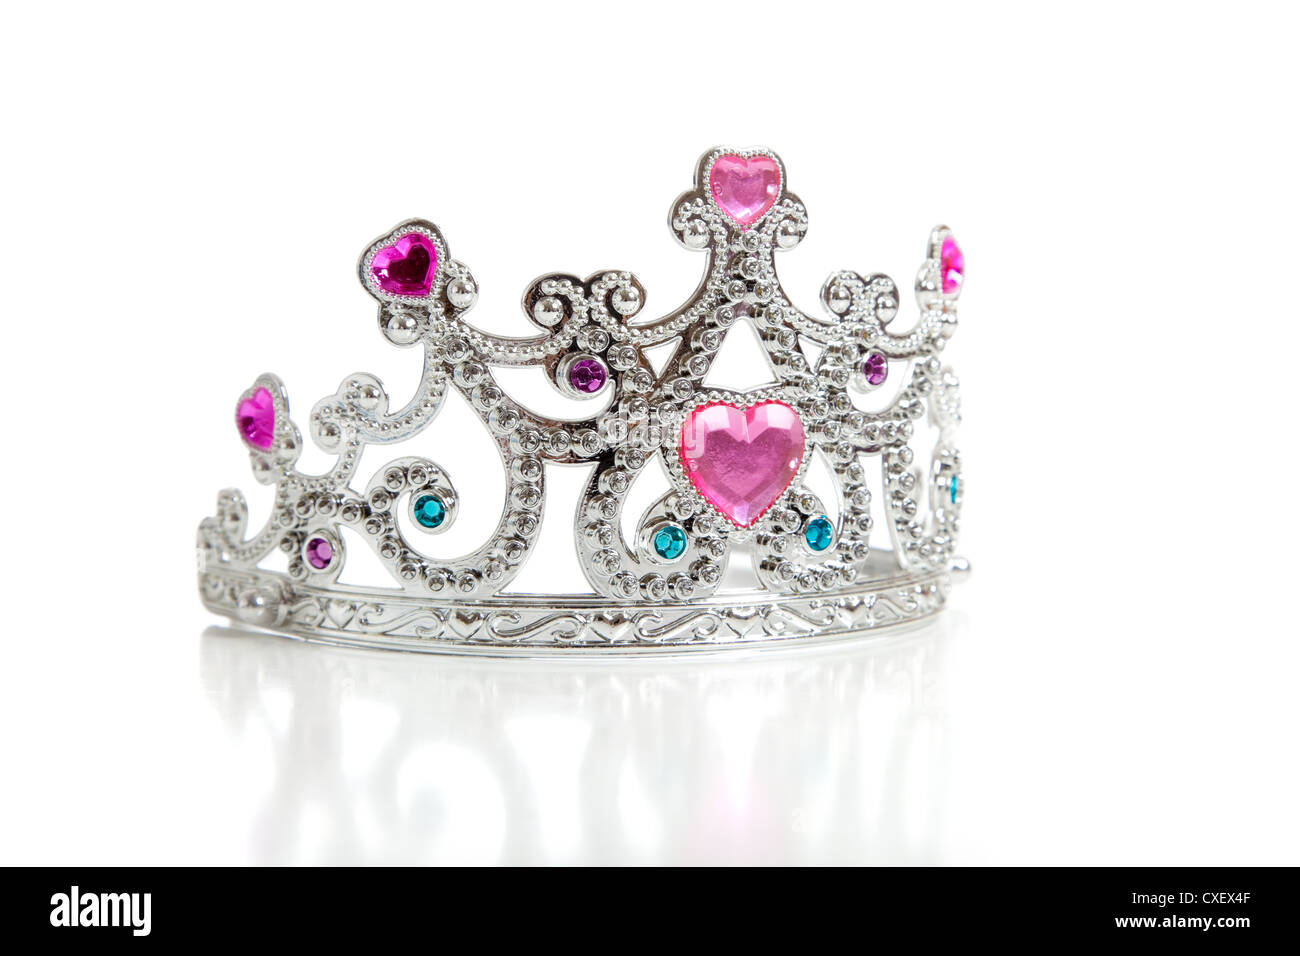 Child's princess tiara on a white background - Stock Image